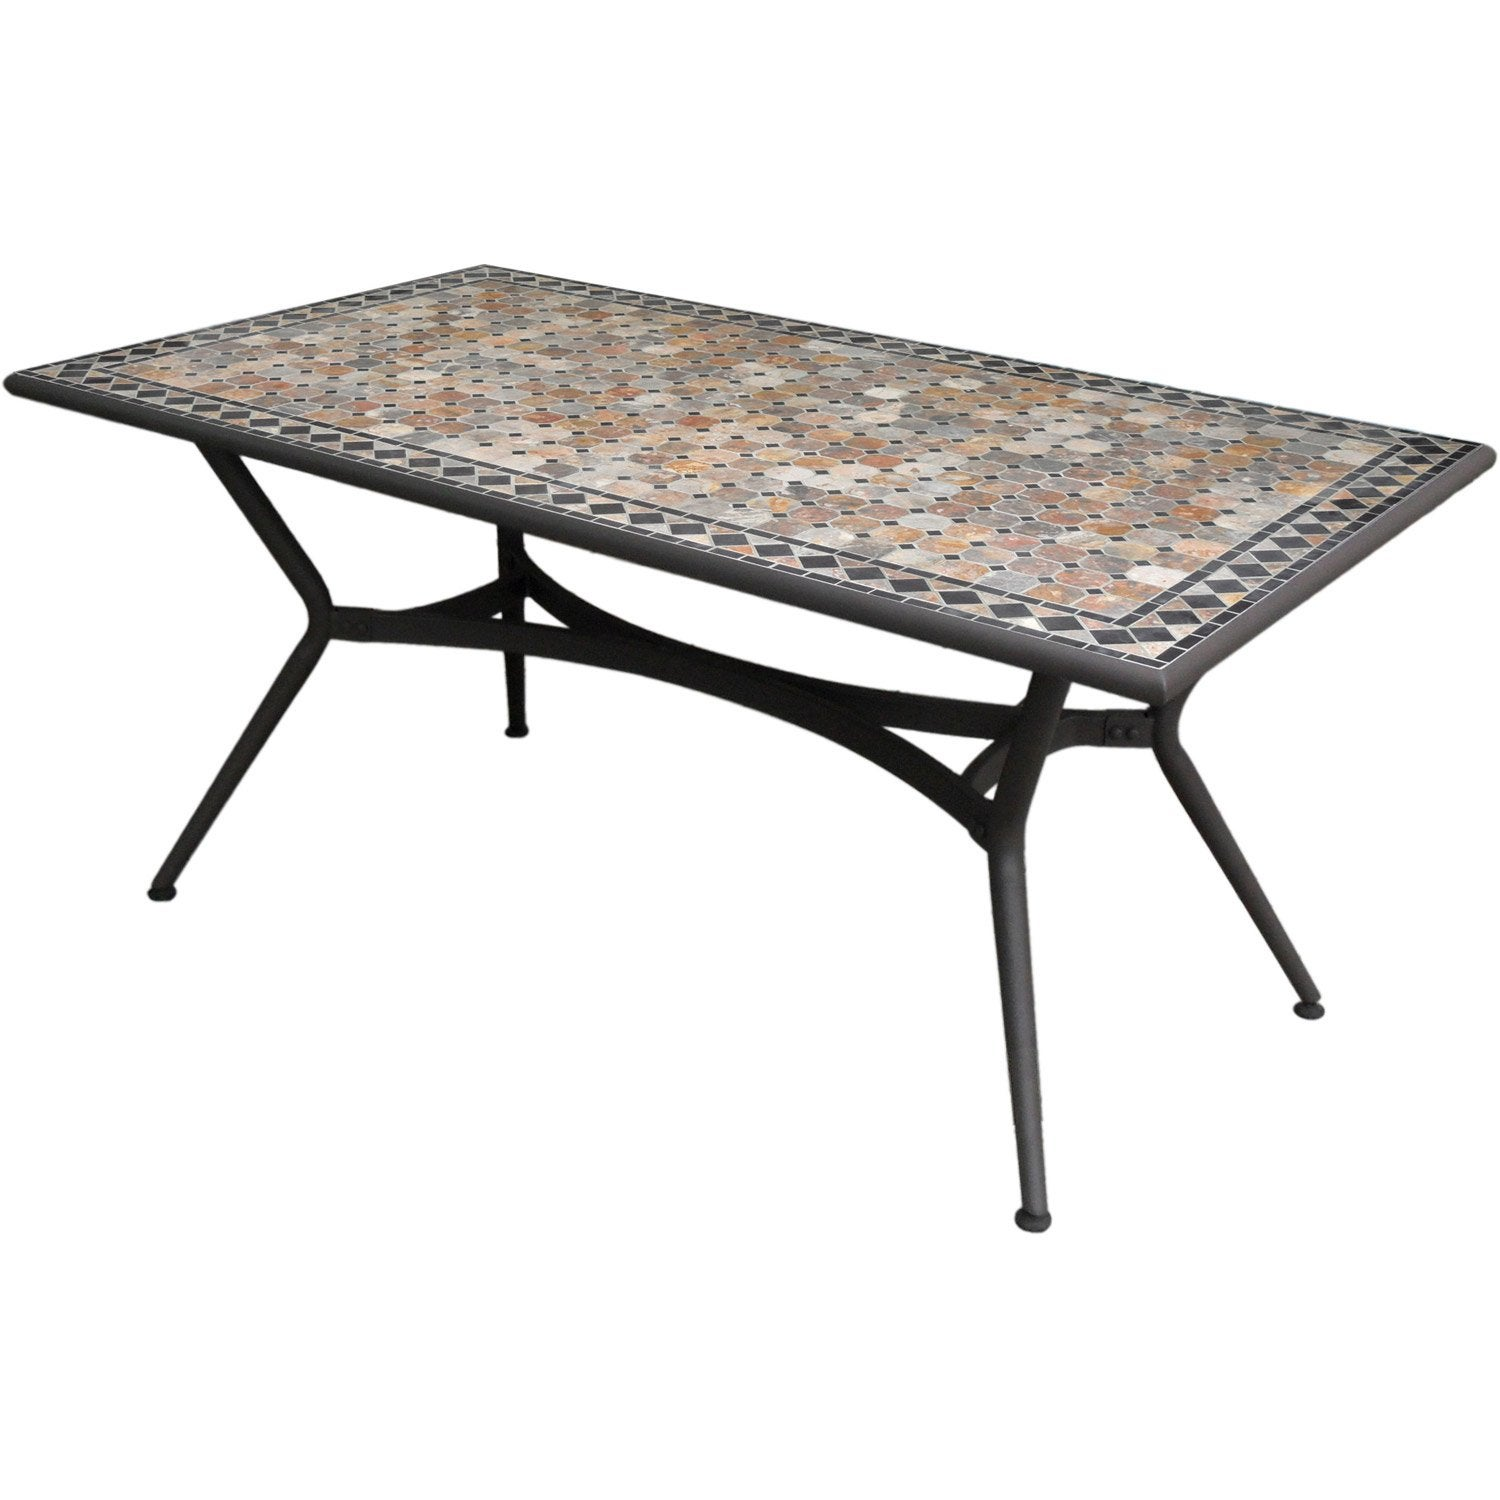 Table de jardin marocco rectangulaire bronze 6 personnes leroy merlin - Leroy merlin table jardin ...